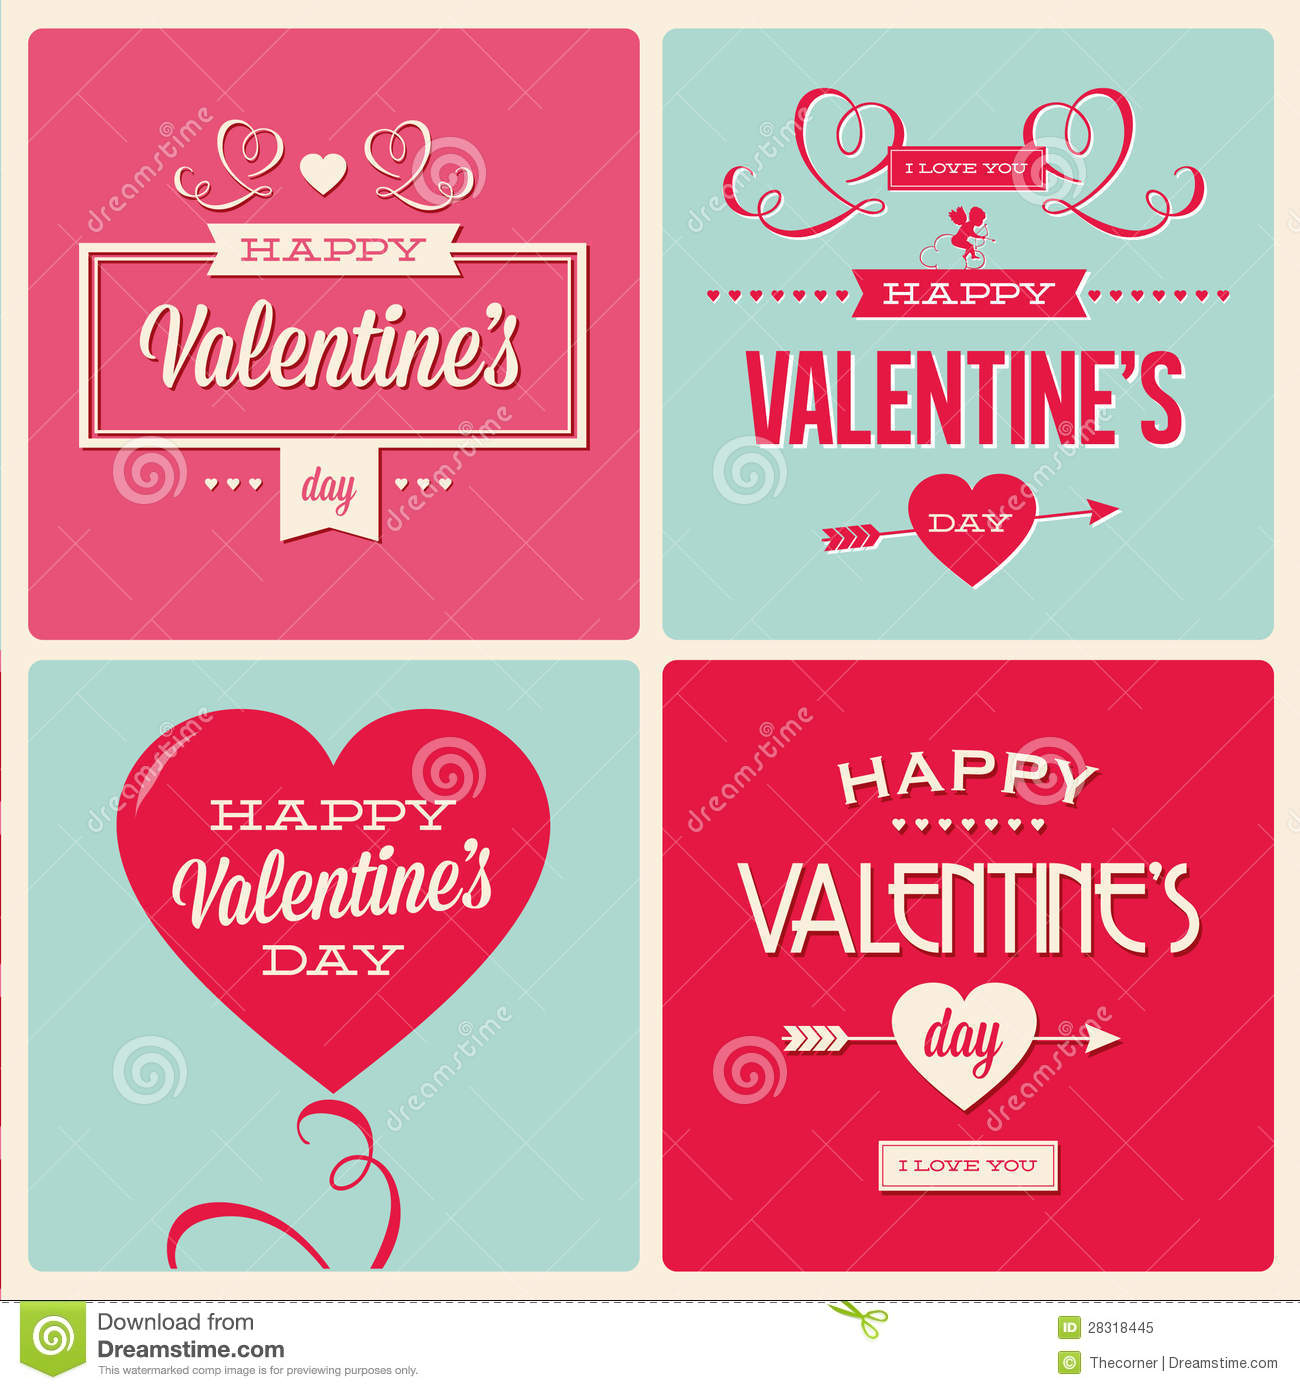 Set of valentines day card design royalty free stock photo for Designs for valentine cards